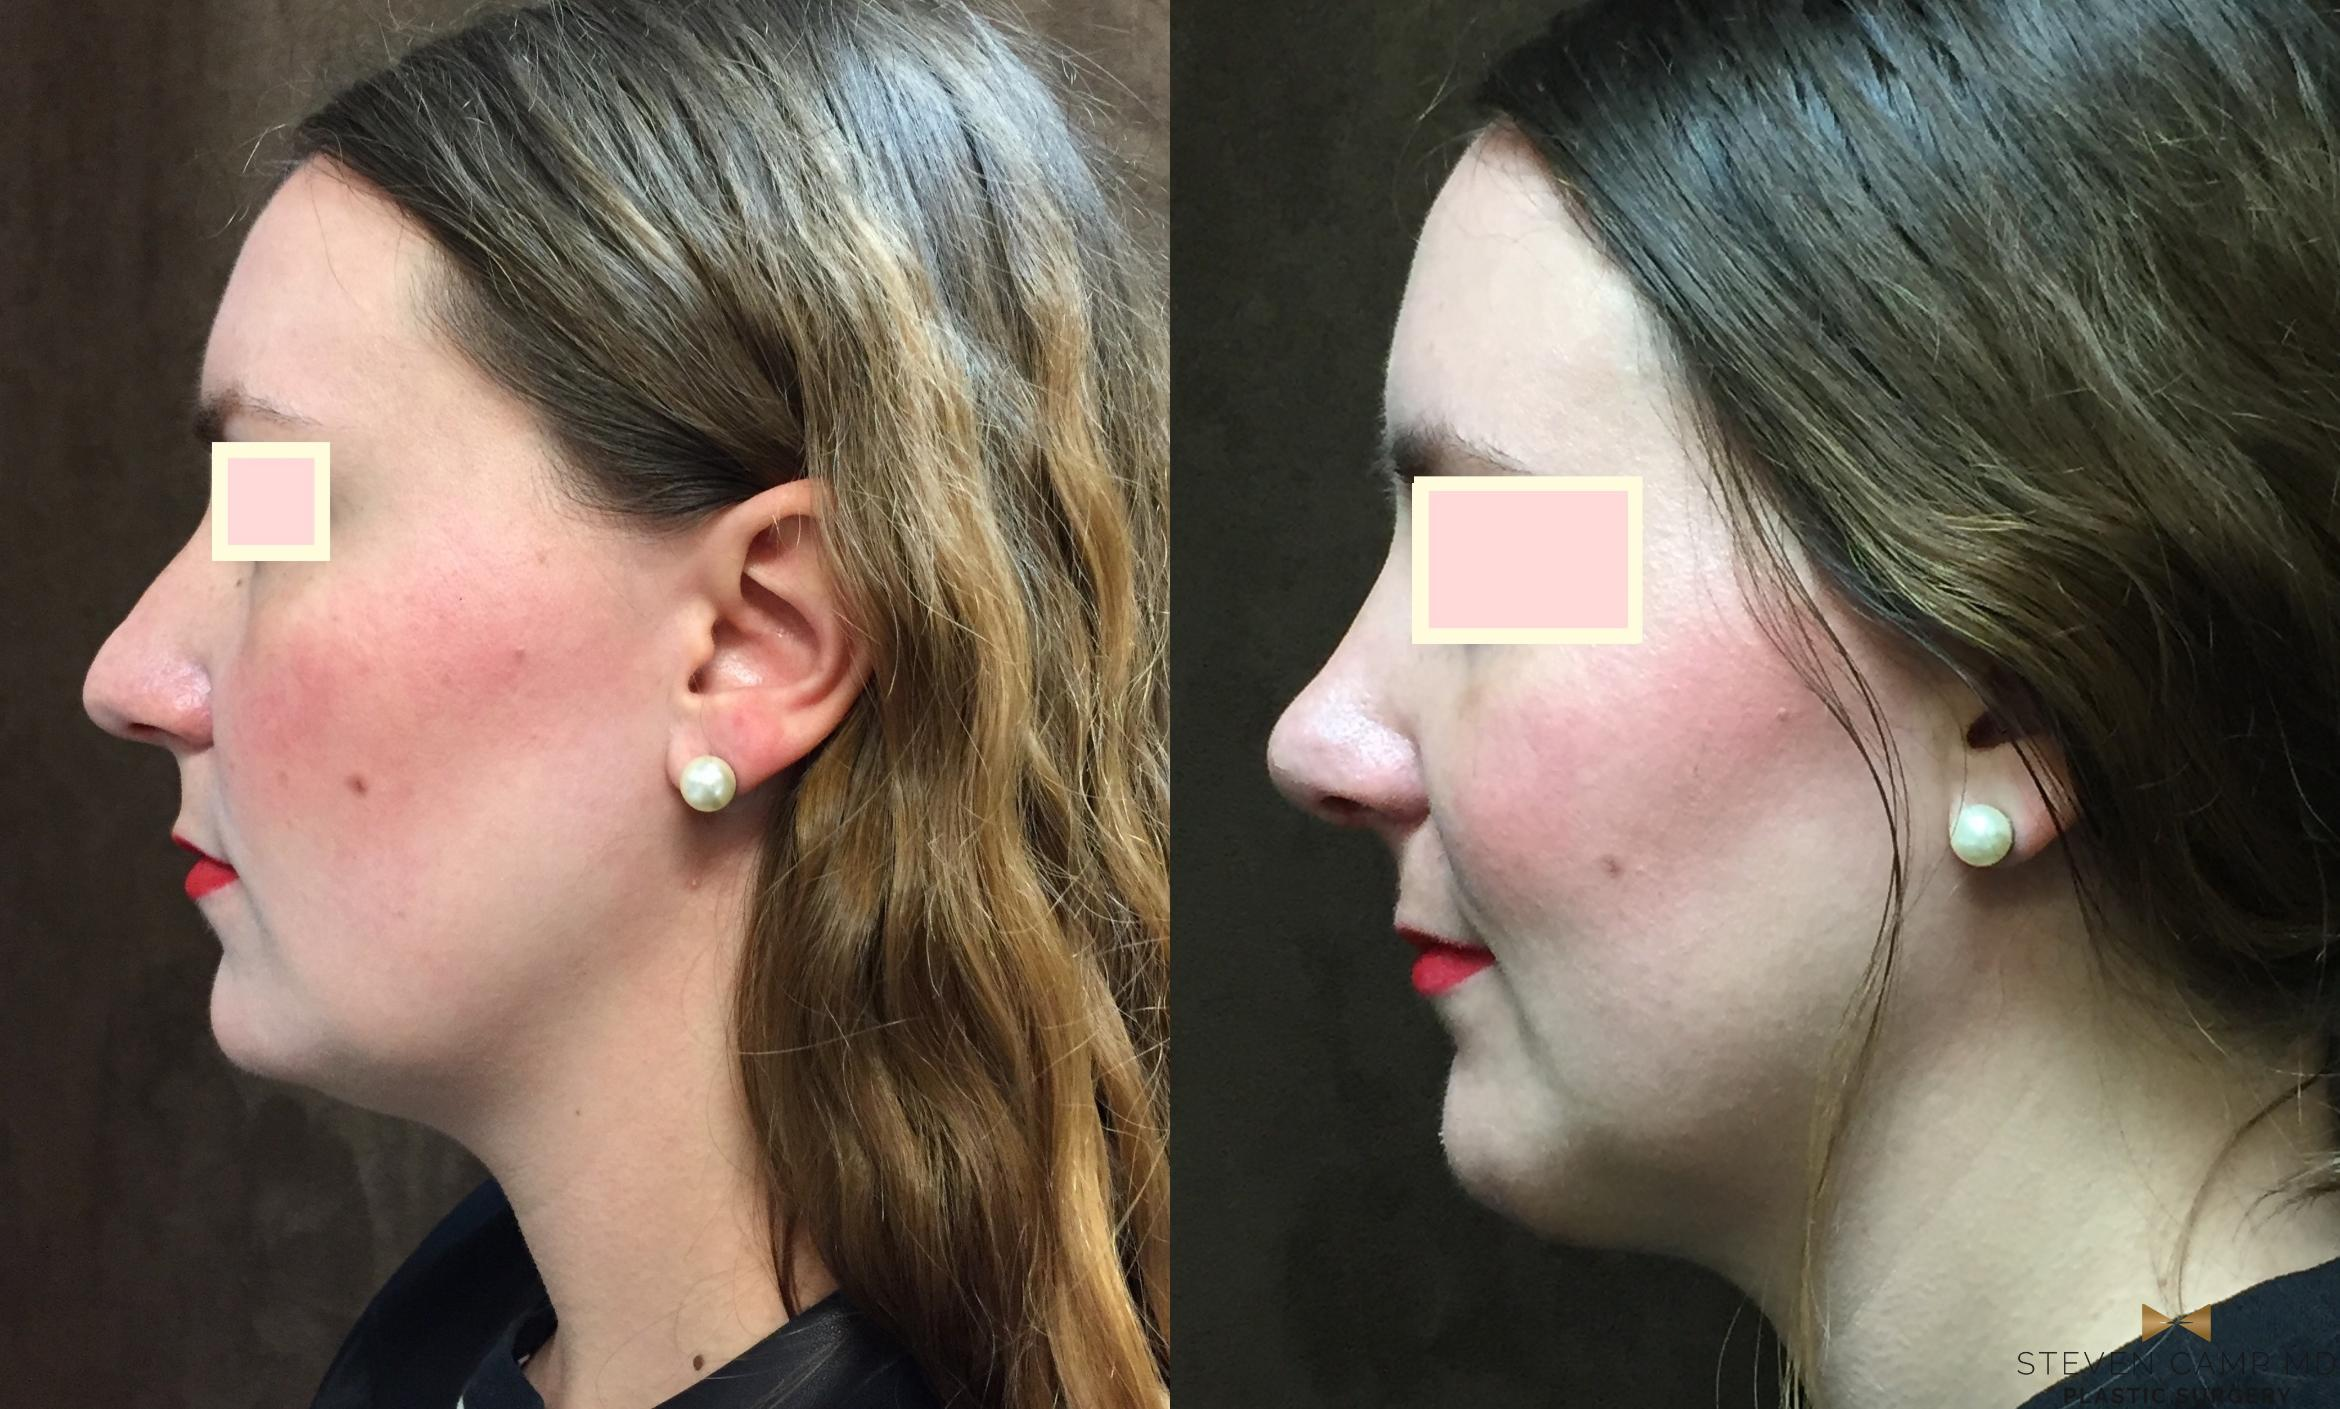 Rhinoplasty Before & After Photo | Fort Worth, Texas | Steven Camp MD Plastic Surgery